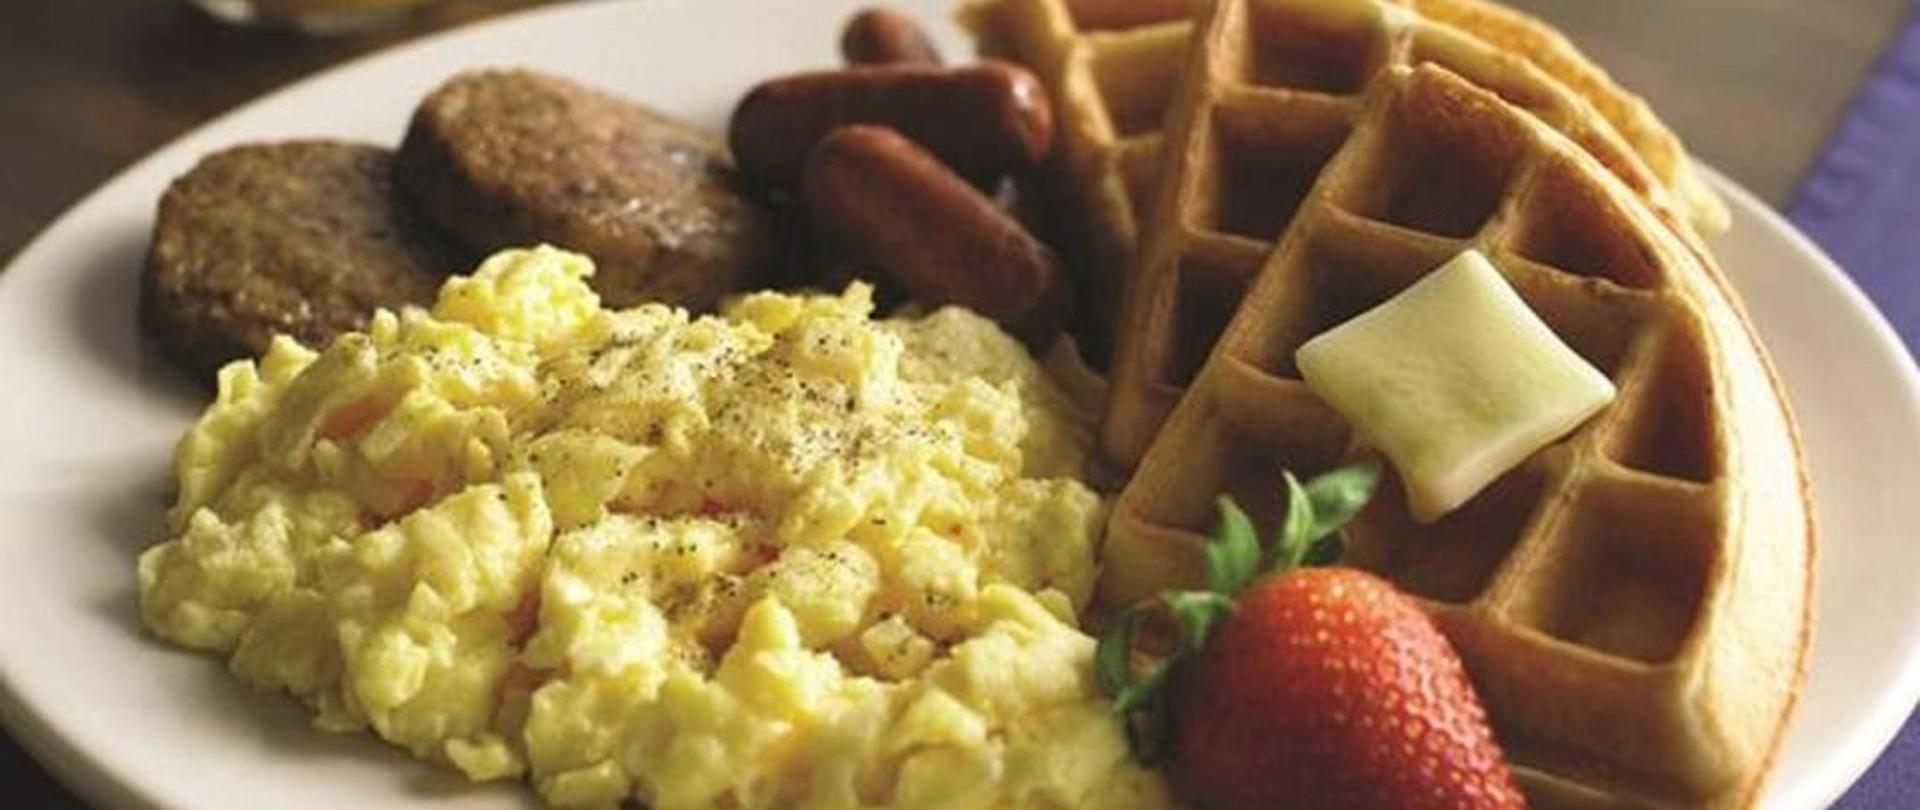 your-morning-breakfast-hot-and-ready1.jpg.1140x481_default.jpg